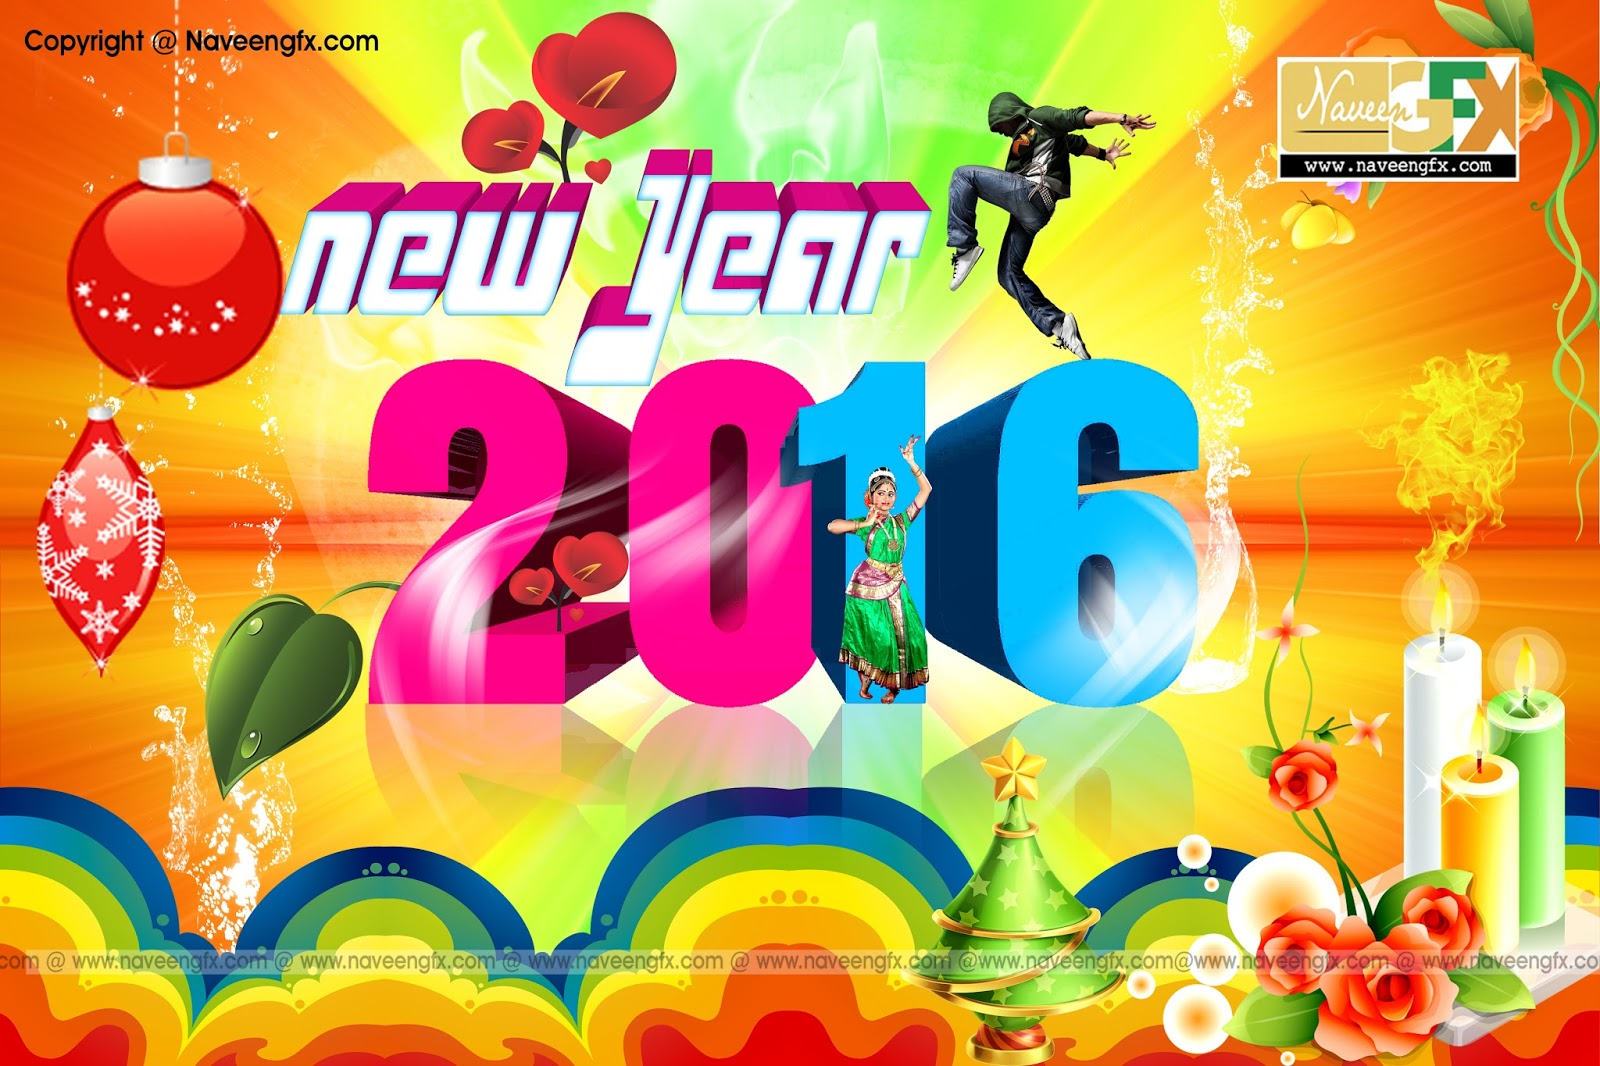 New Years 2016 Greeting Cards Psd Templates Free Downloads